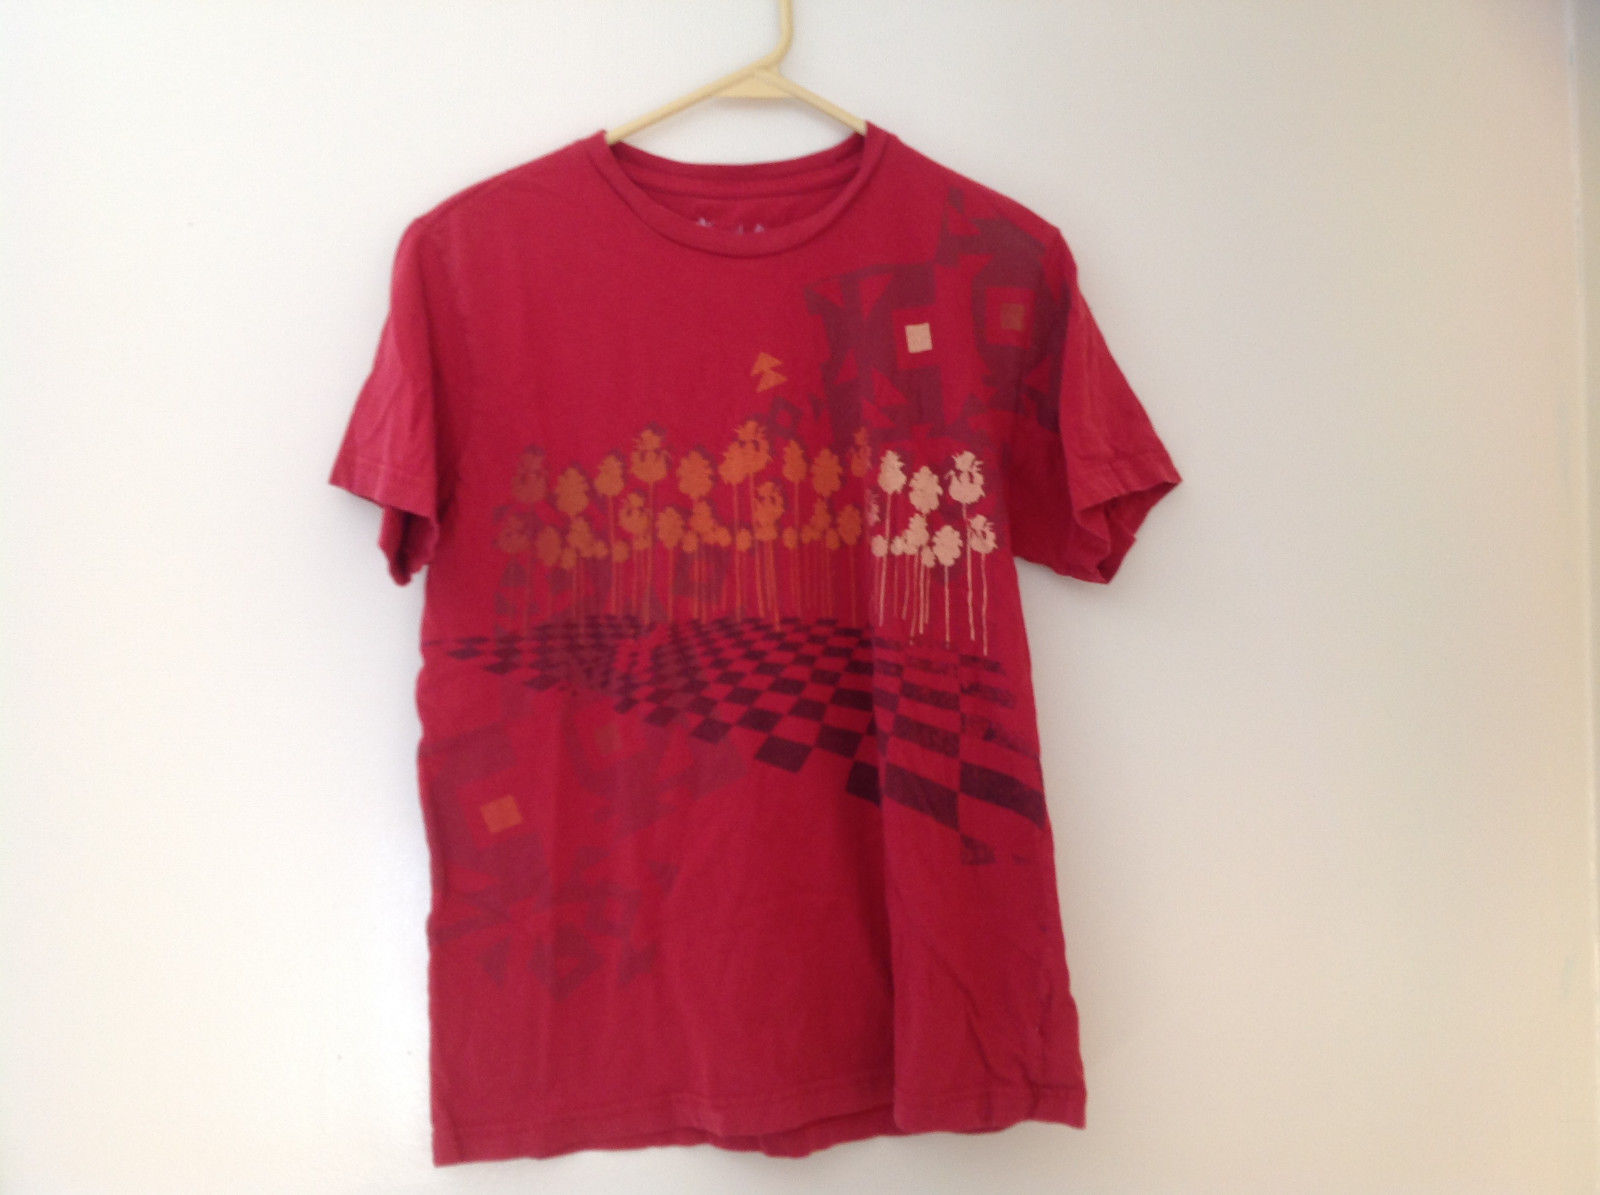 Arizona Red Palm Tree Graphic Short Sleeve T-Shirt Size Medium